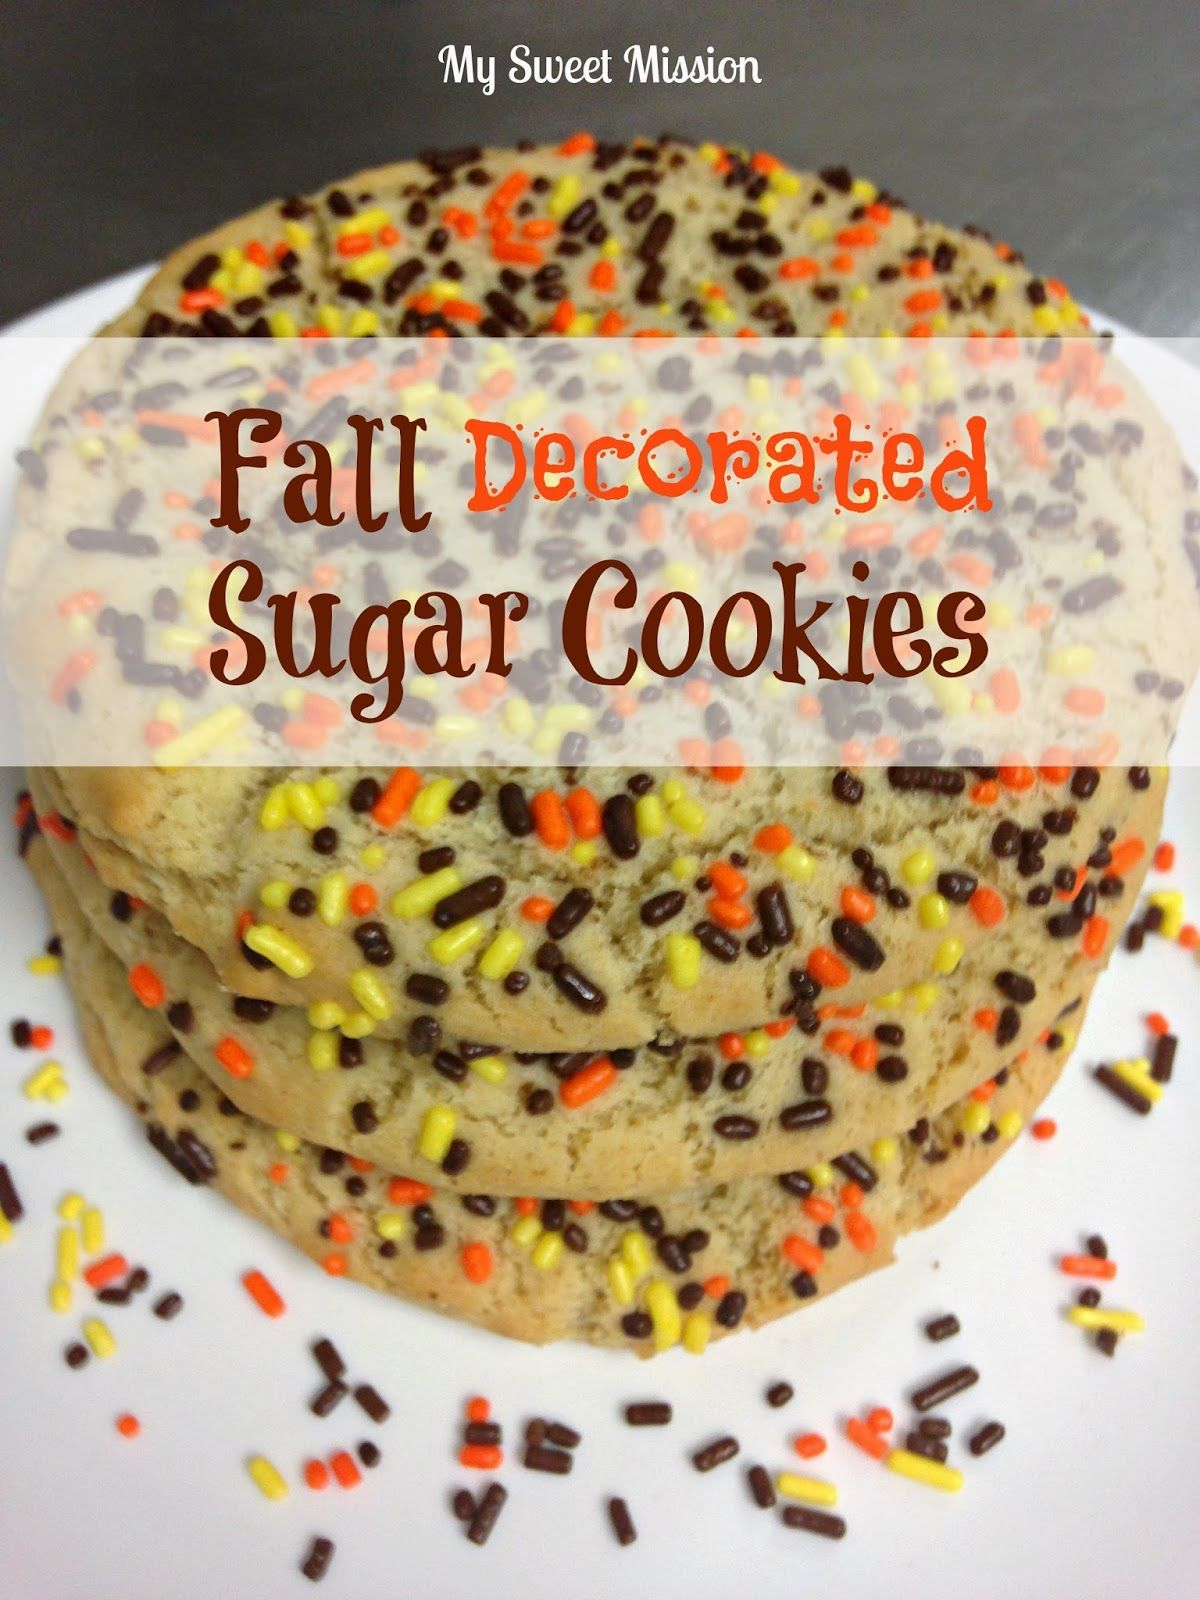 Fall Decorated Sugar Cookie by My Sweet Mission